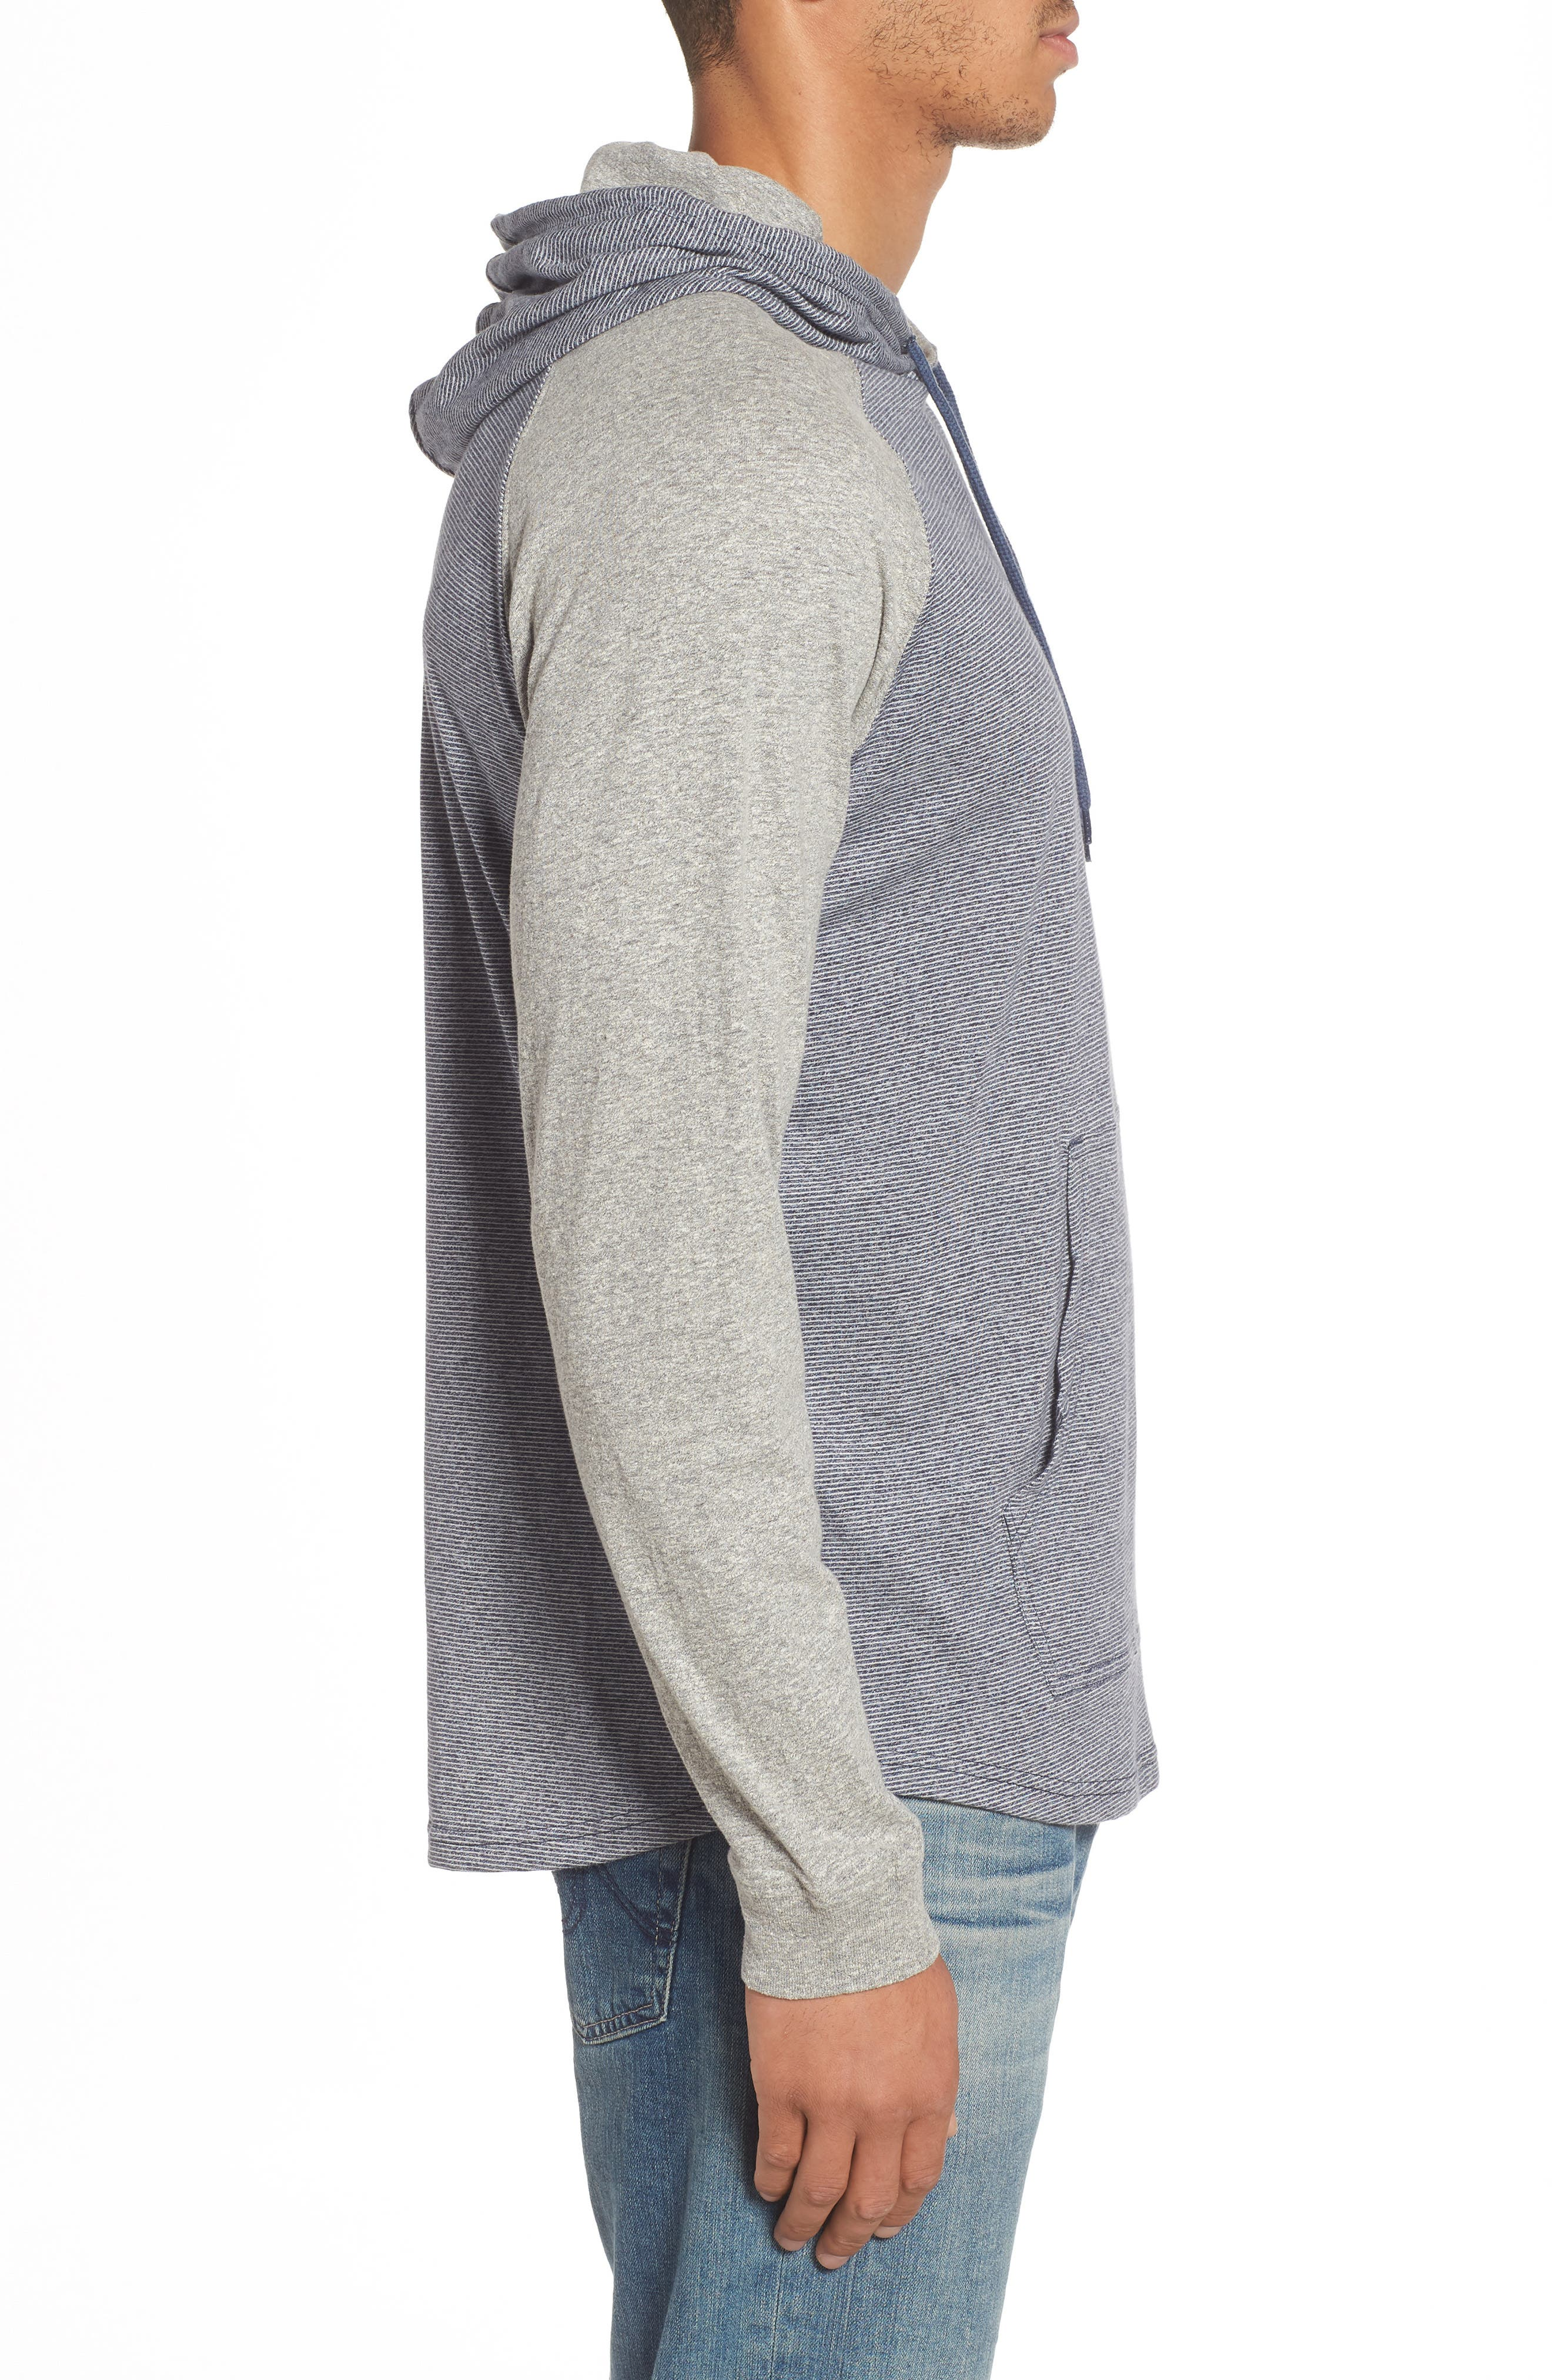 All In Hoodie,                             Alternate thumbnail 3, color,                             410